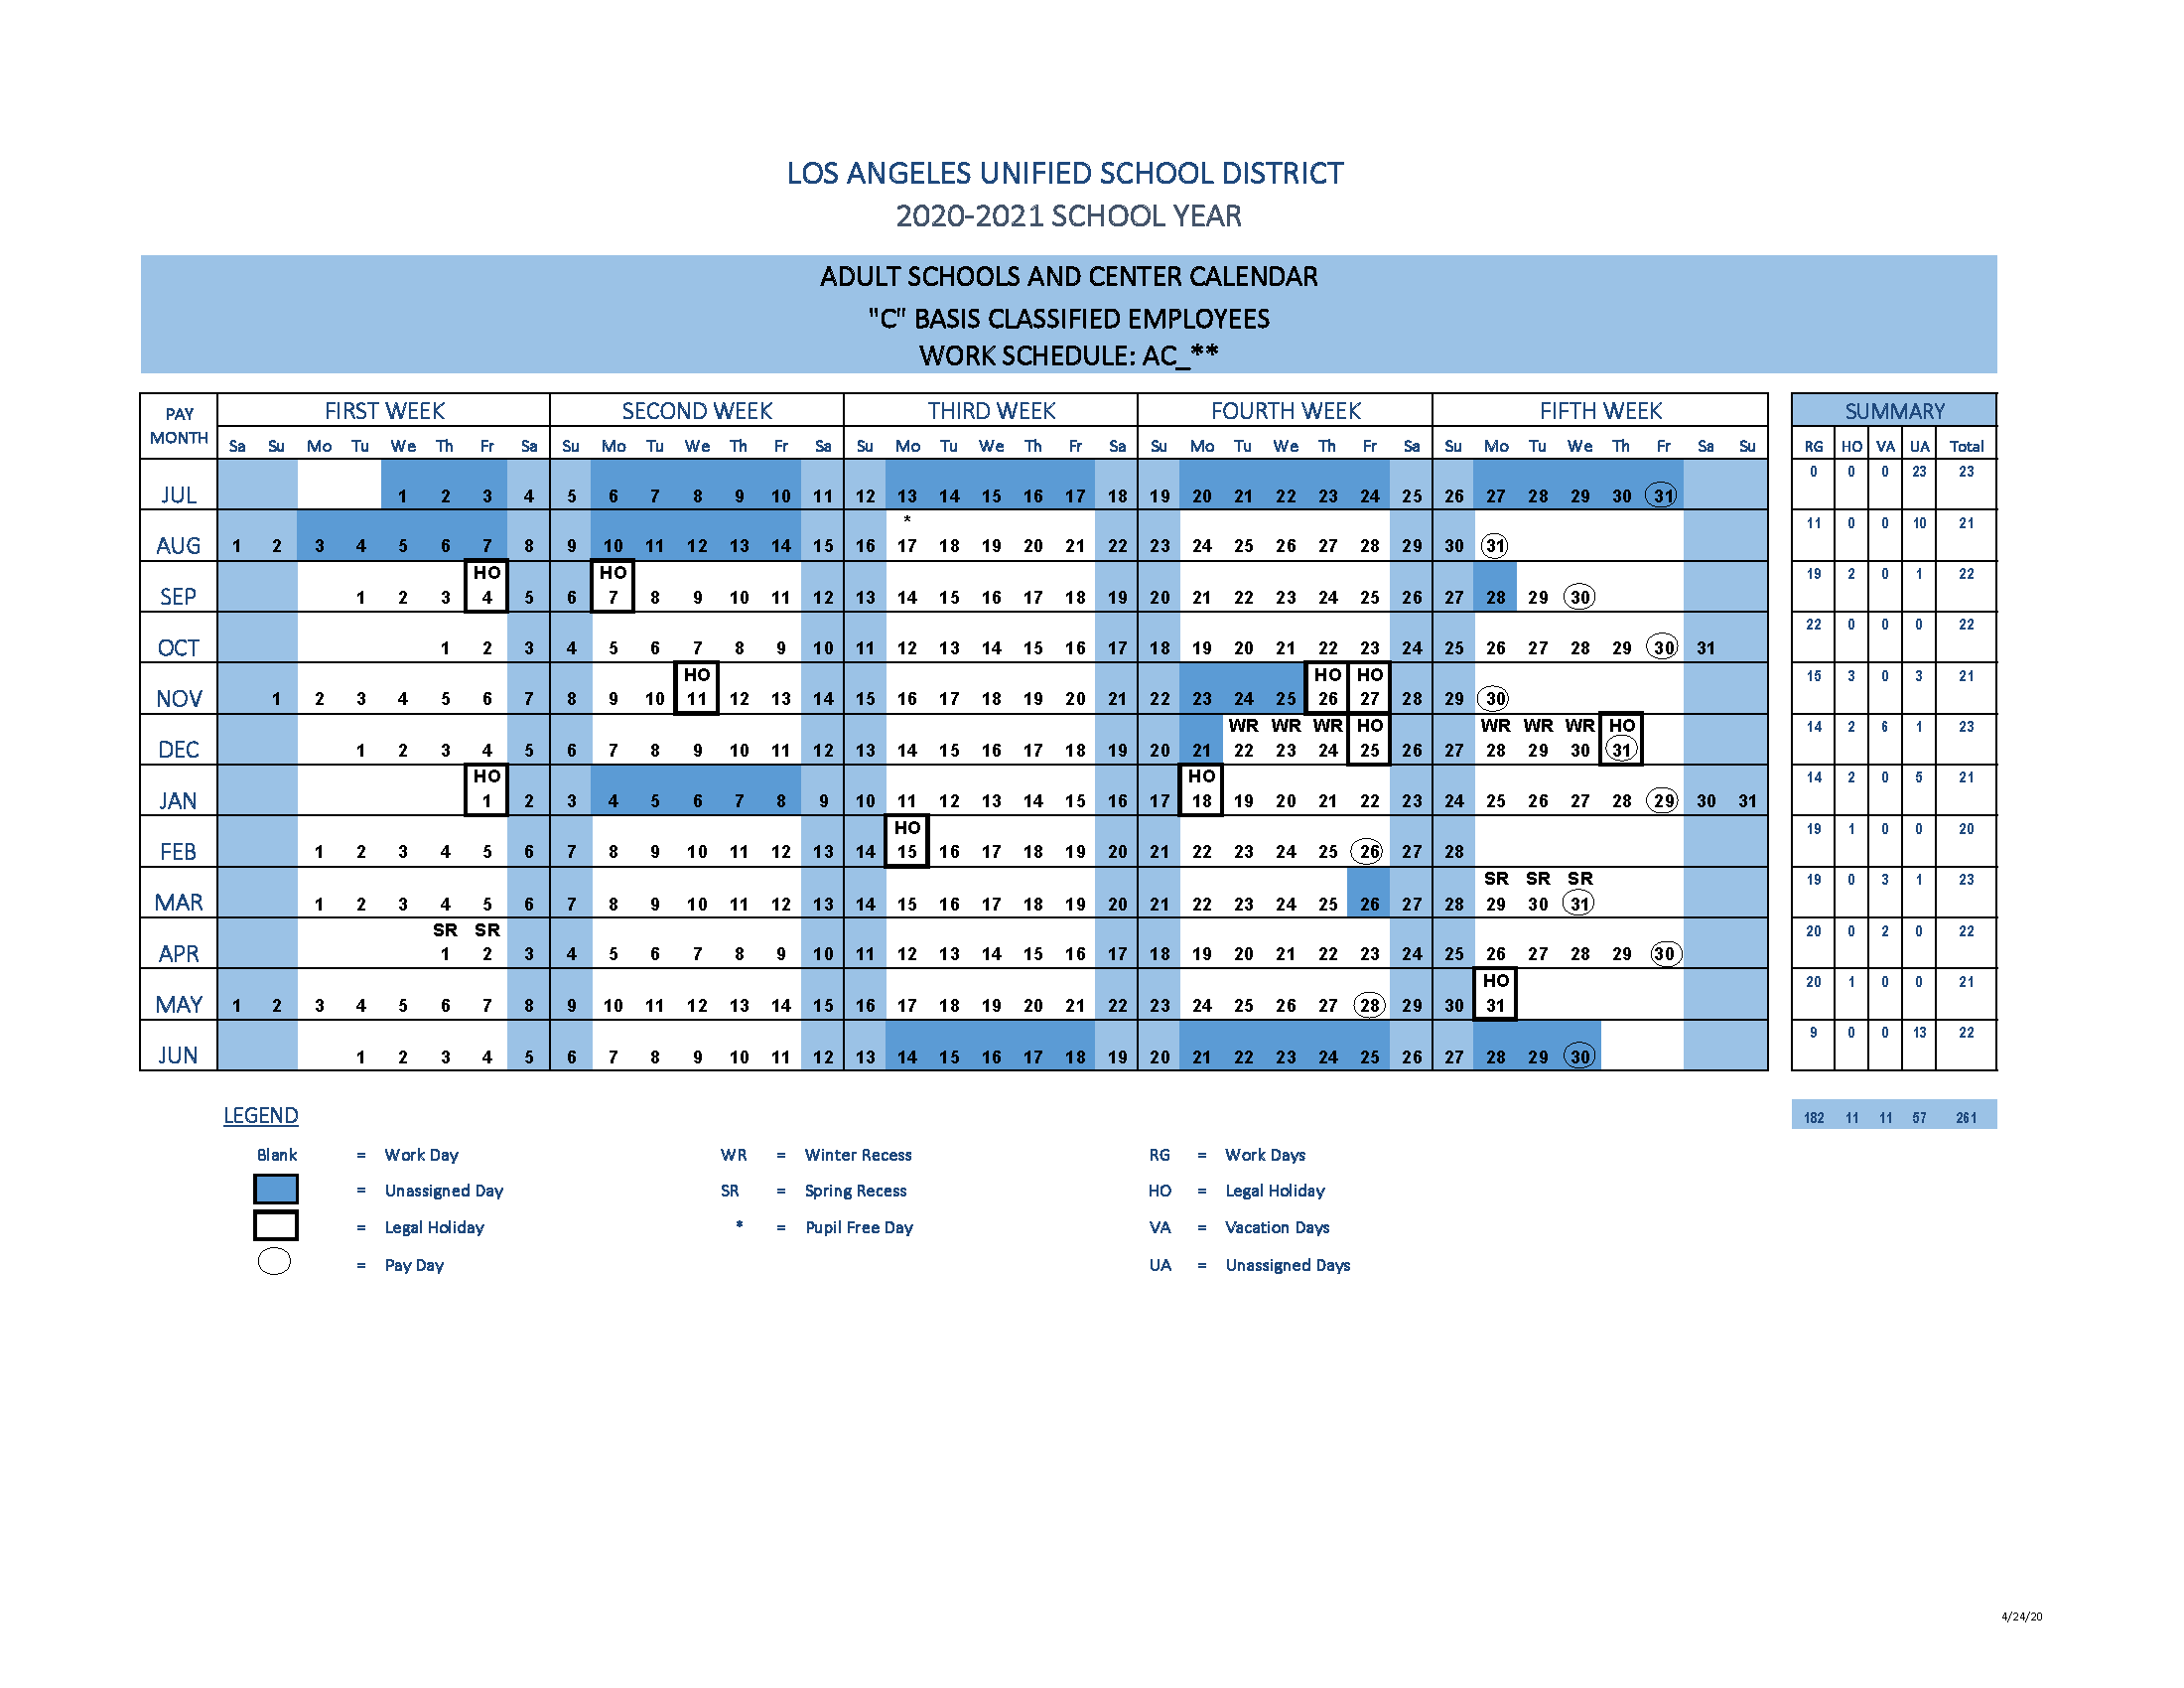 2020-2021 Classified Adult Schools and Centers Calendar